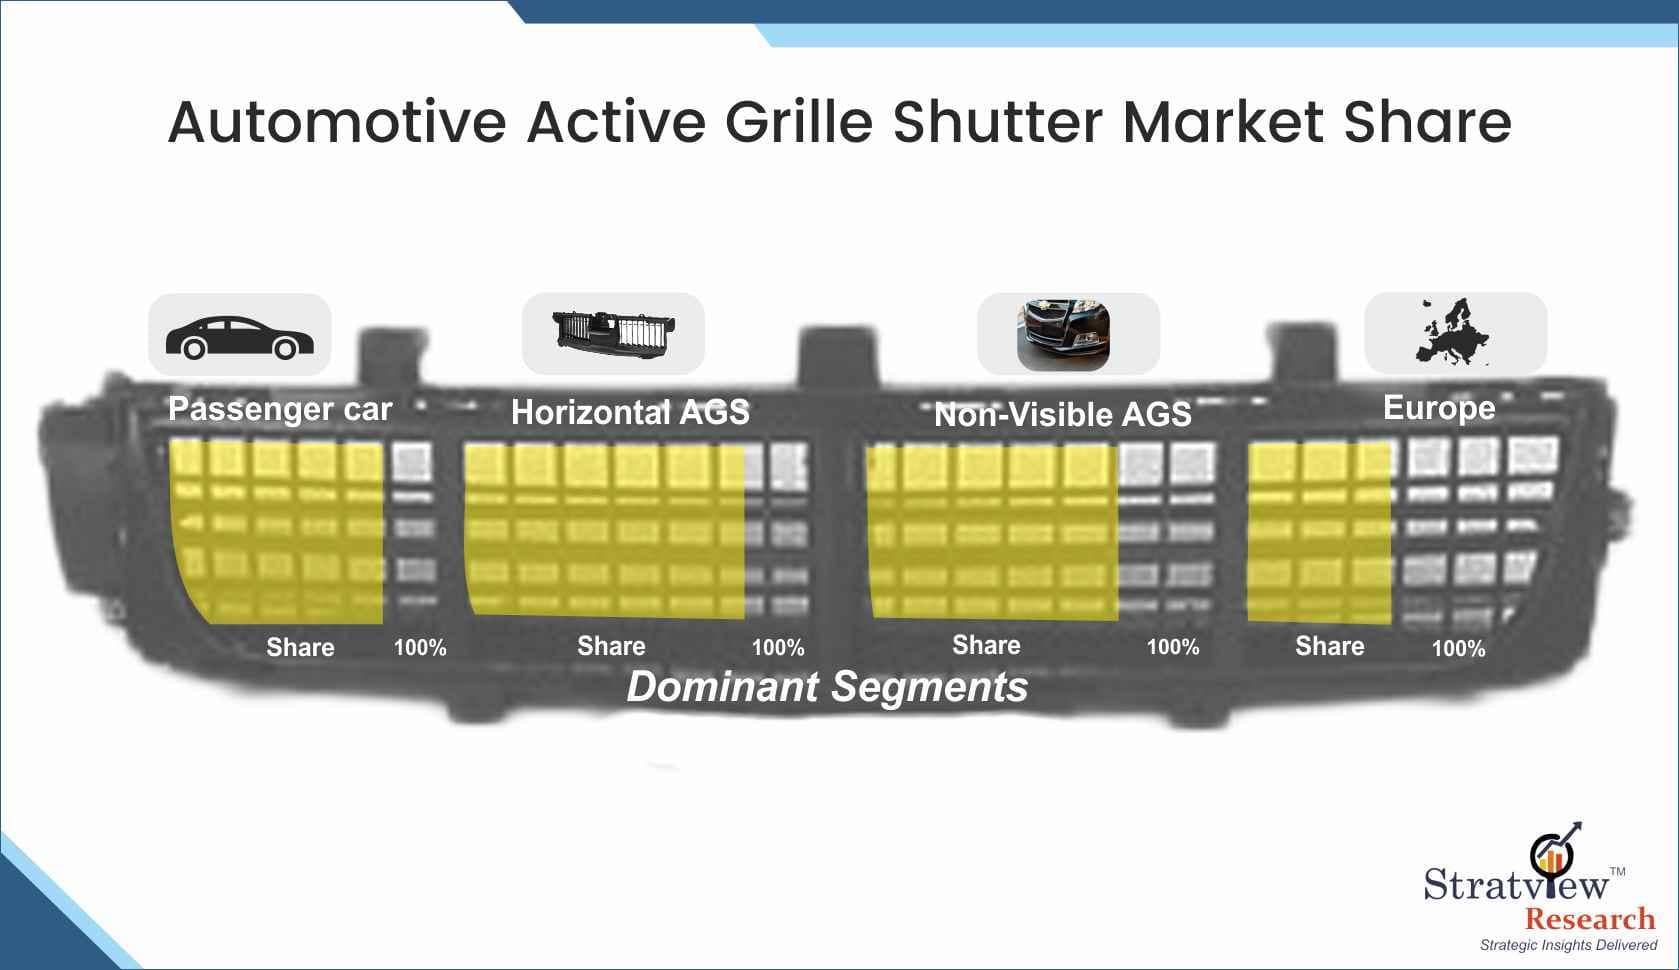 Automotive Active Grille Shutter Market Share